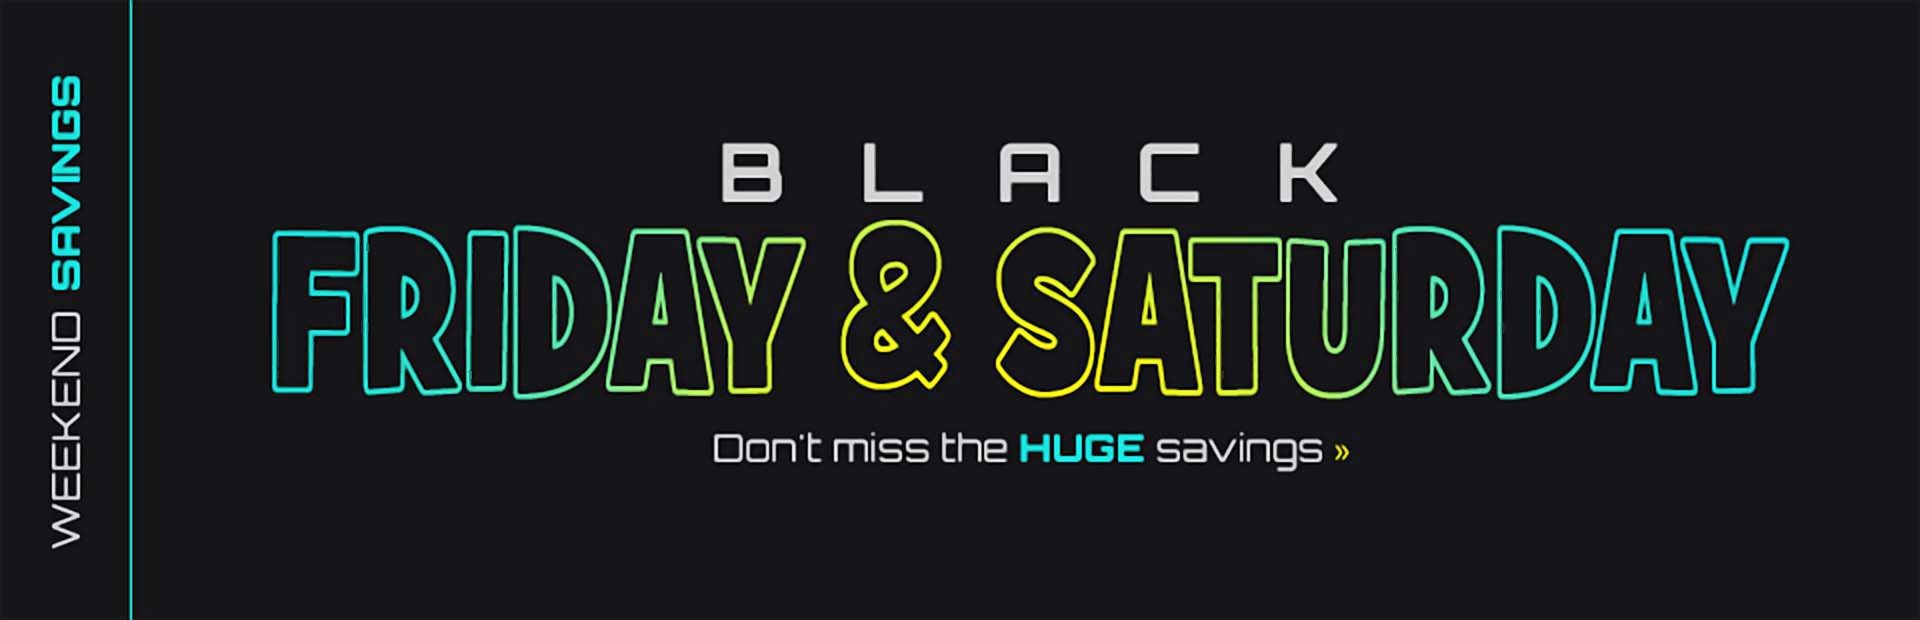 Get huge weekend savings on Black Friday and Saturday! Click here to shop online.